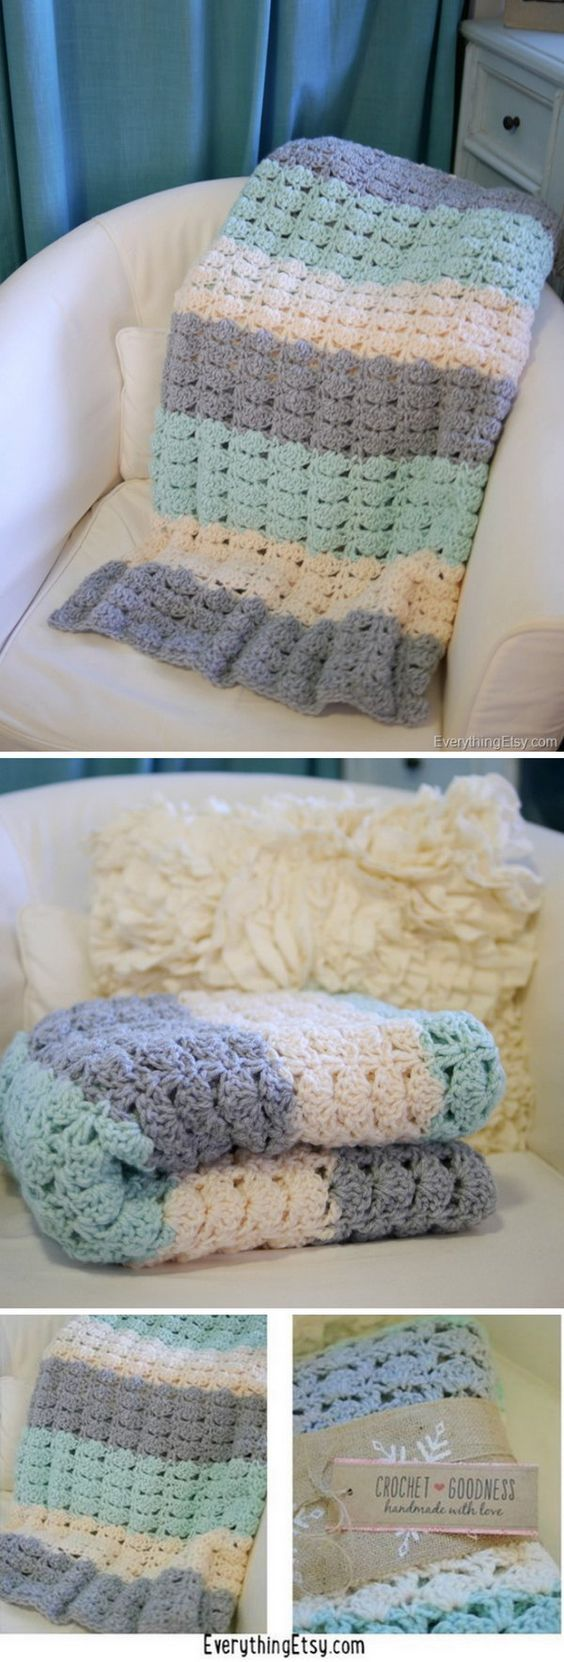 20+ Free Crochet Blanket Patterns with Lots of Tutorials | Manta ...